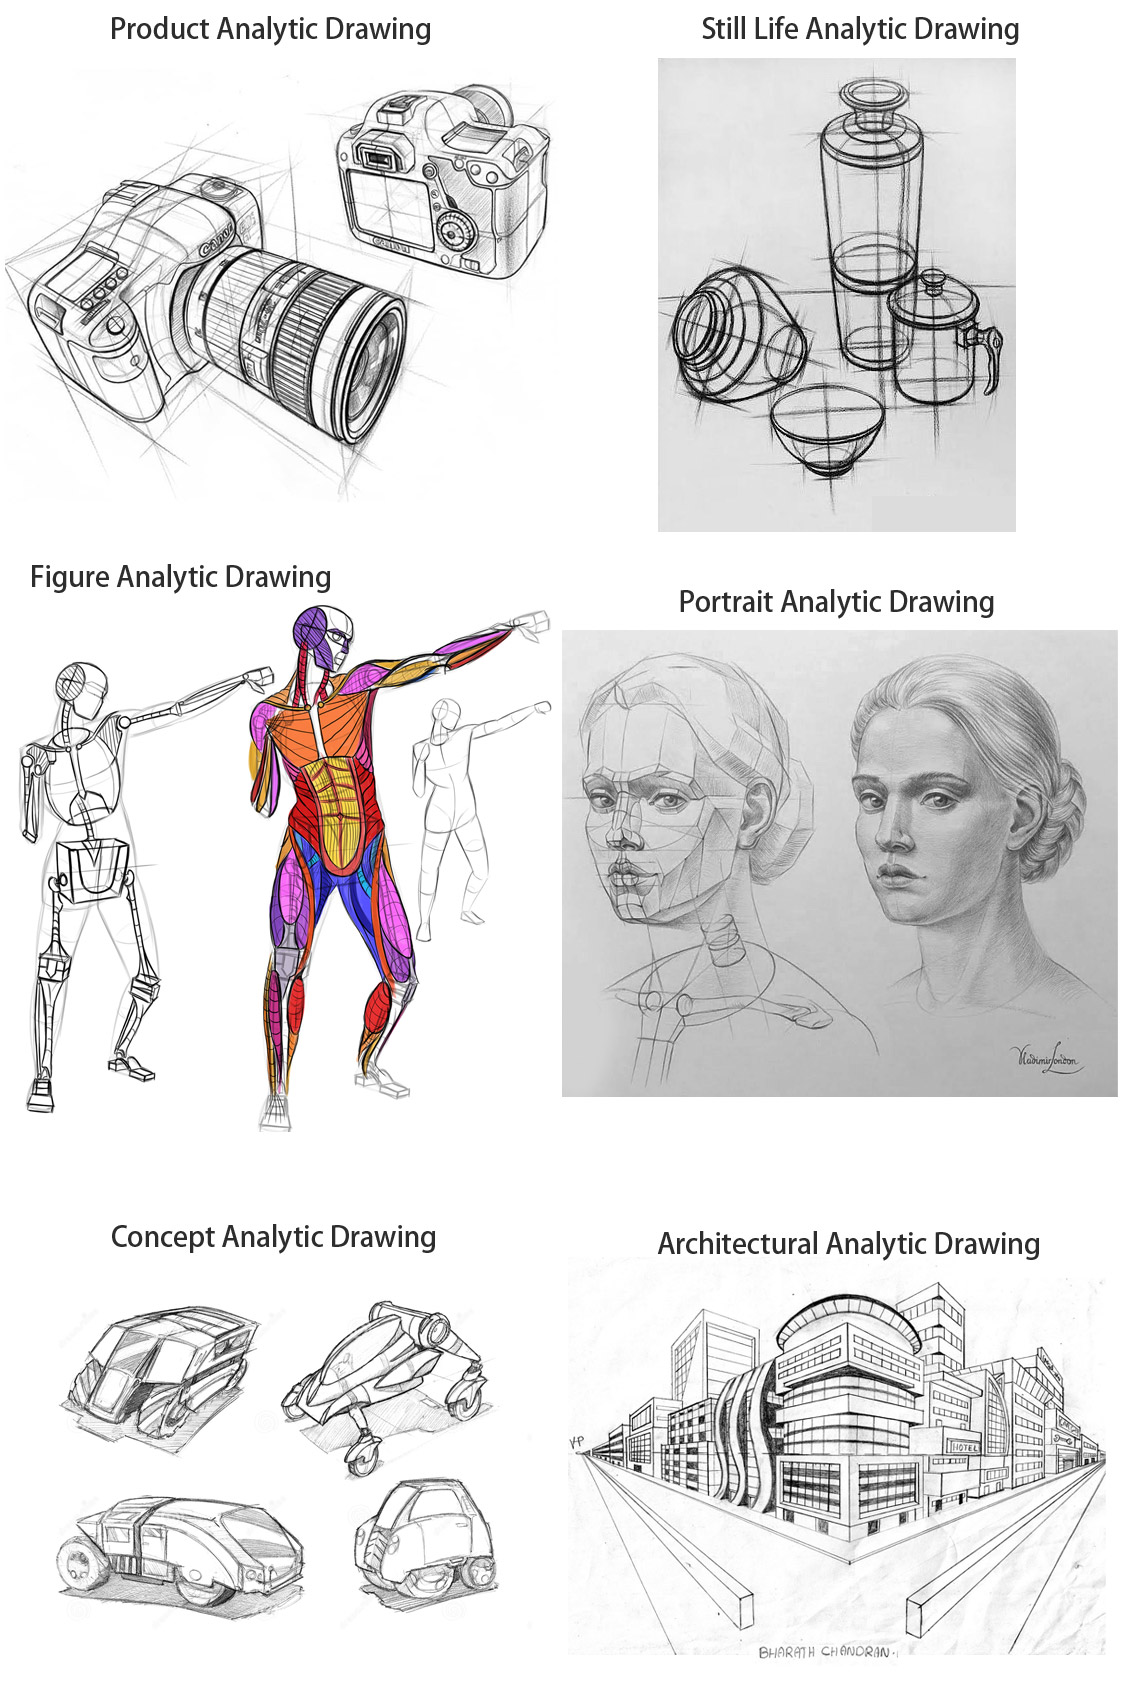 different types of analytic drawing